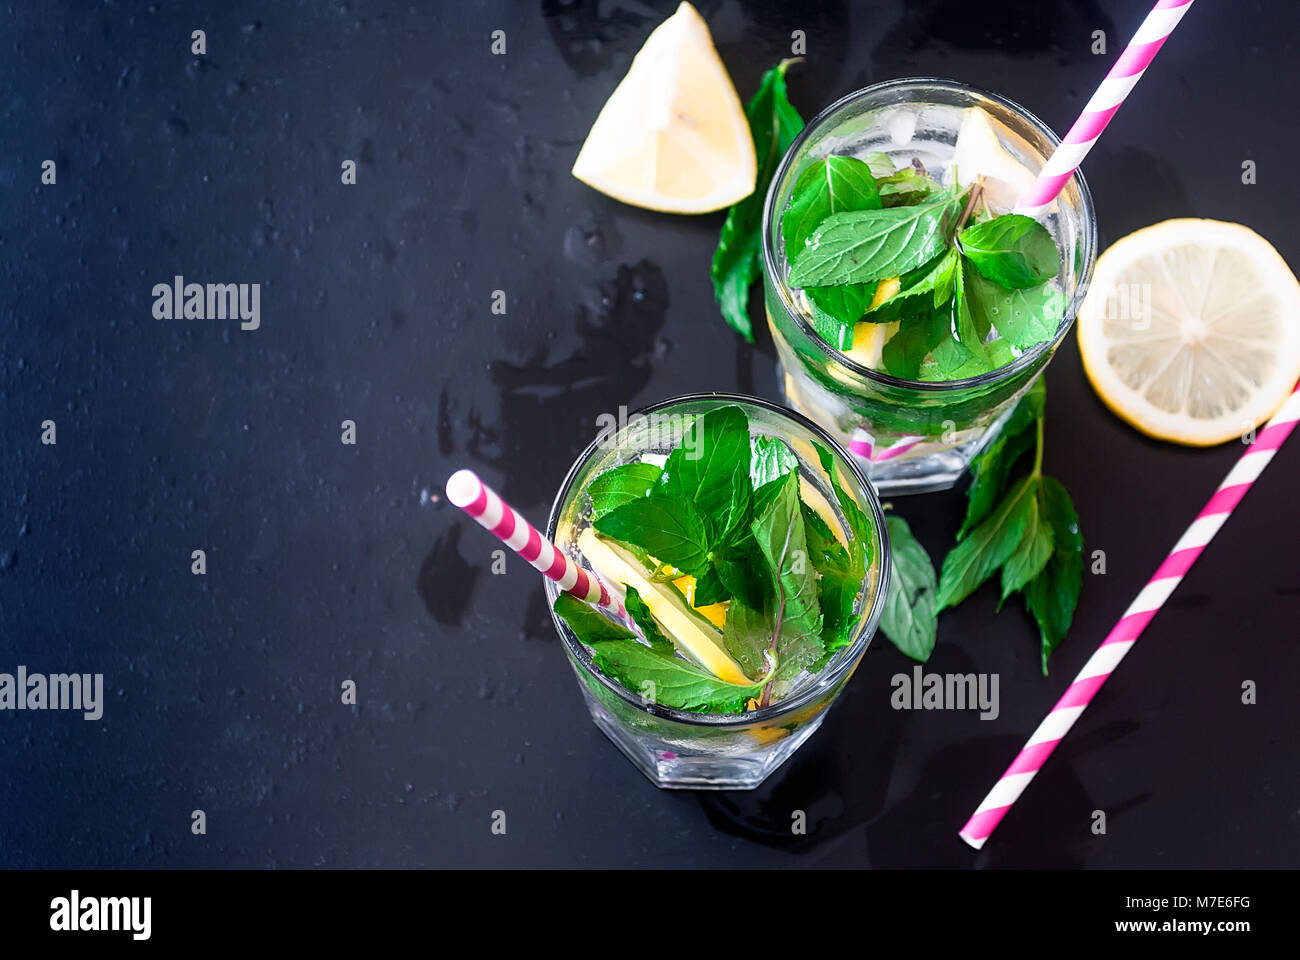 Fresh homemade lemonade in glass with ice and mint. - Stock Image